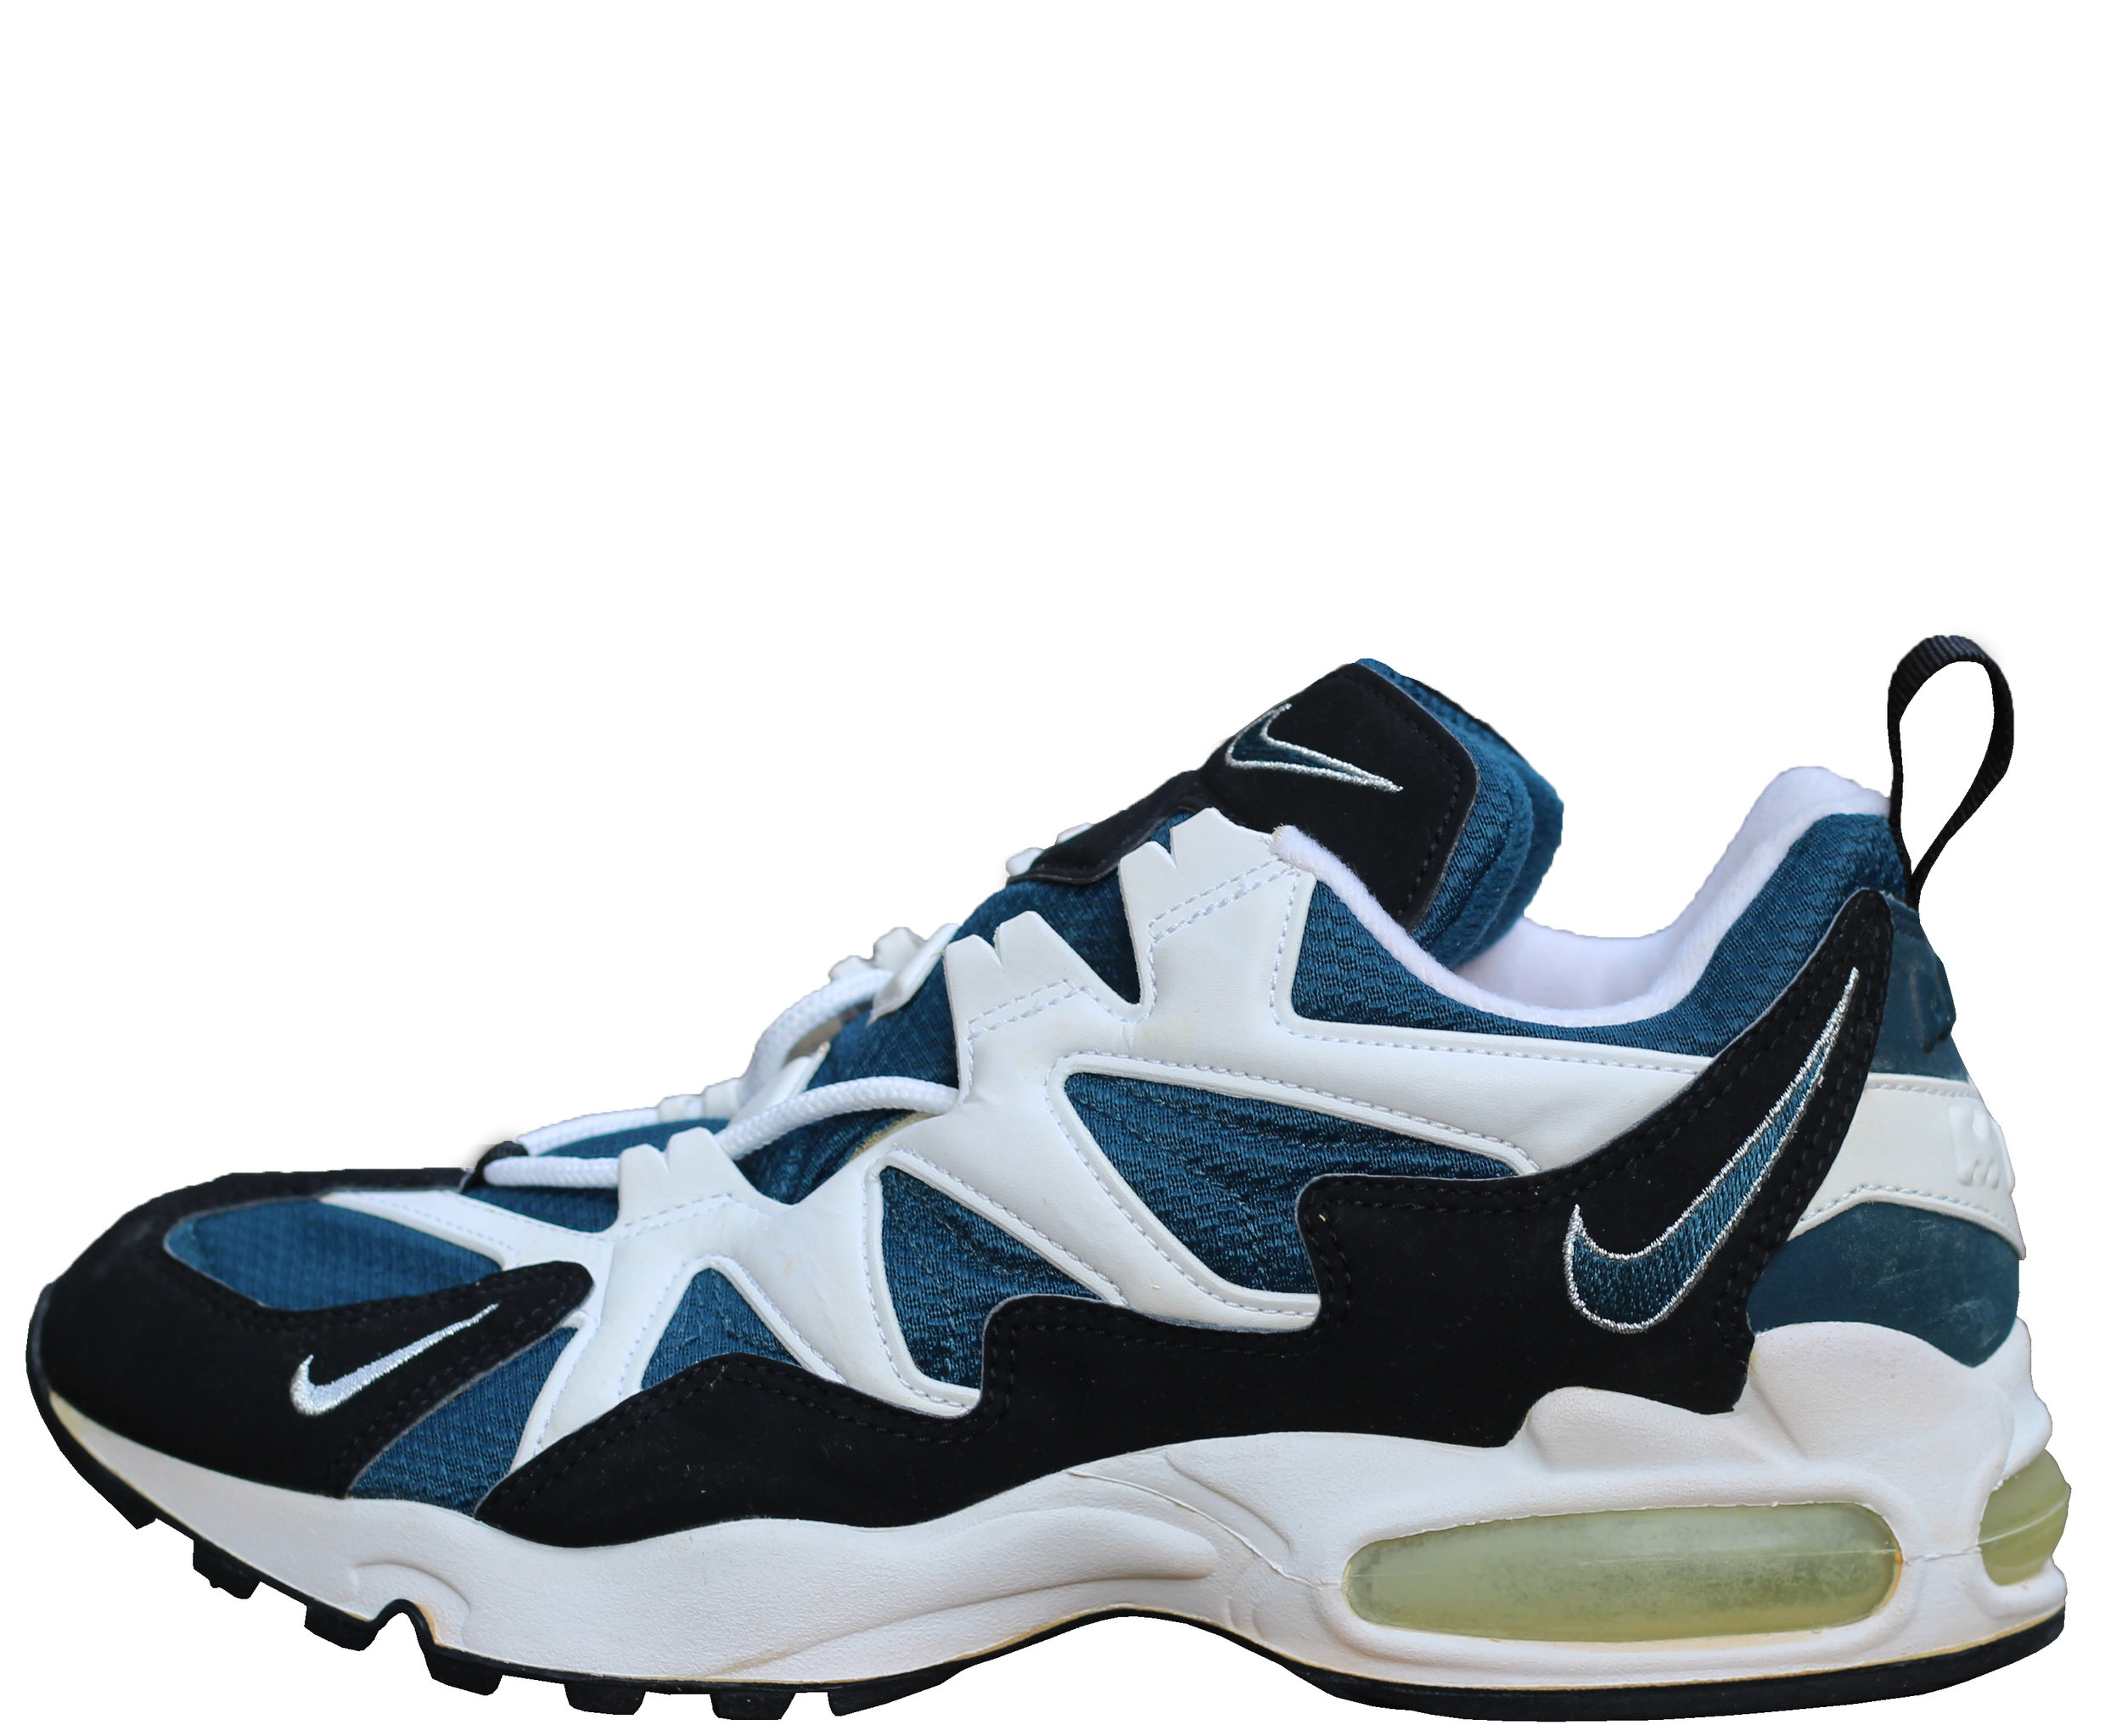 newest collection 5b896 3334a Nike Air Max Tailwind 1996 Nightshade (Size 11) DS — Roots